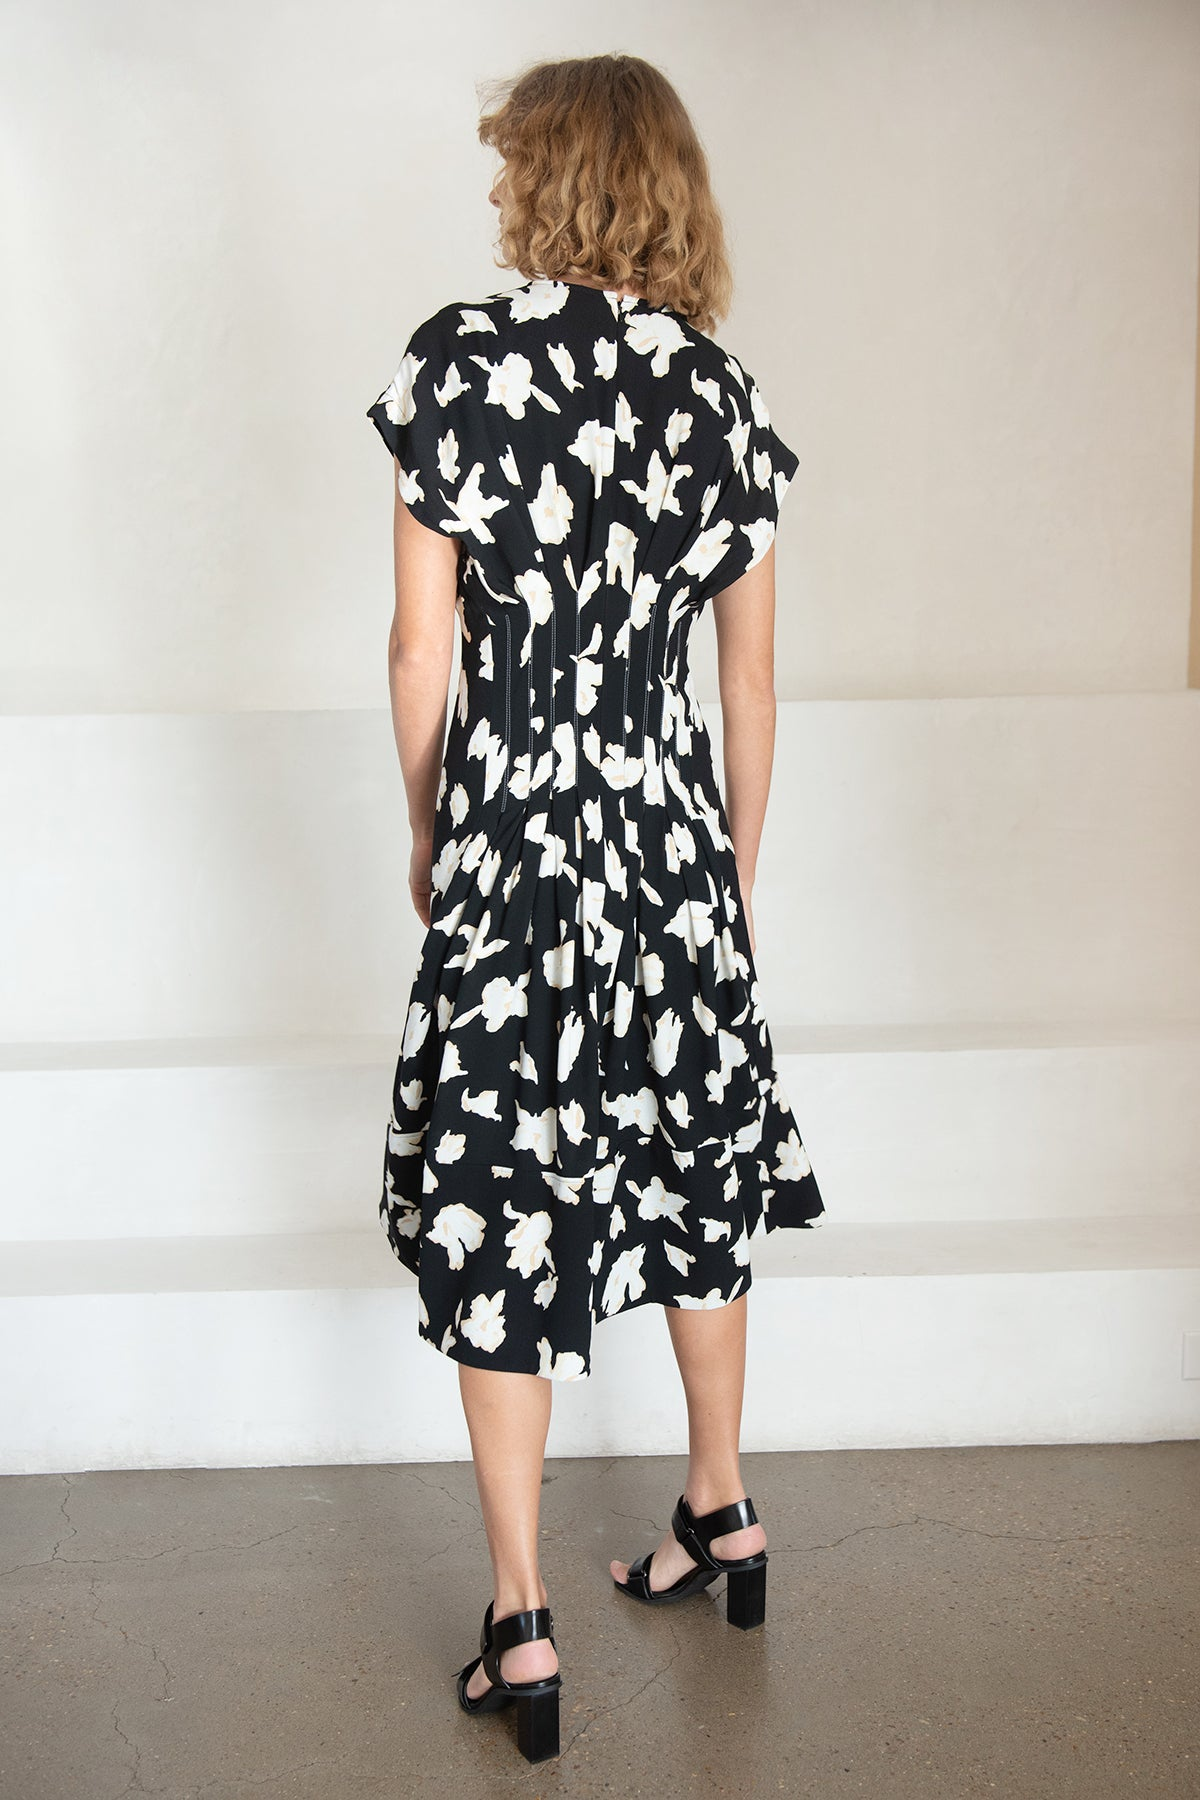 proenza schouler - georgette short sleeve dress, black and white